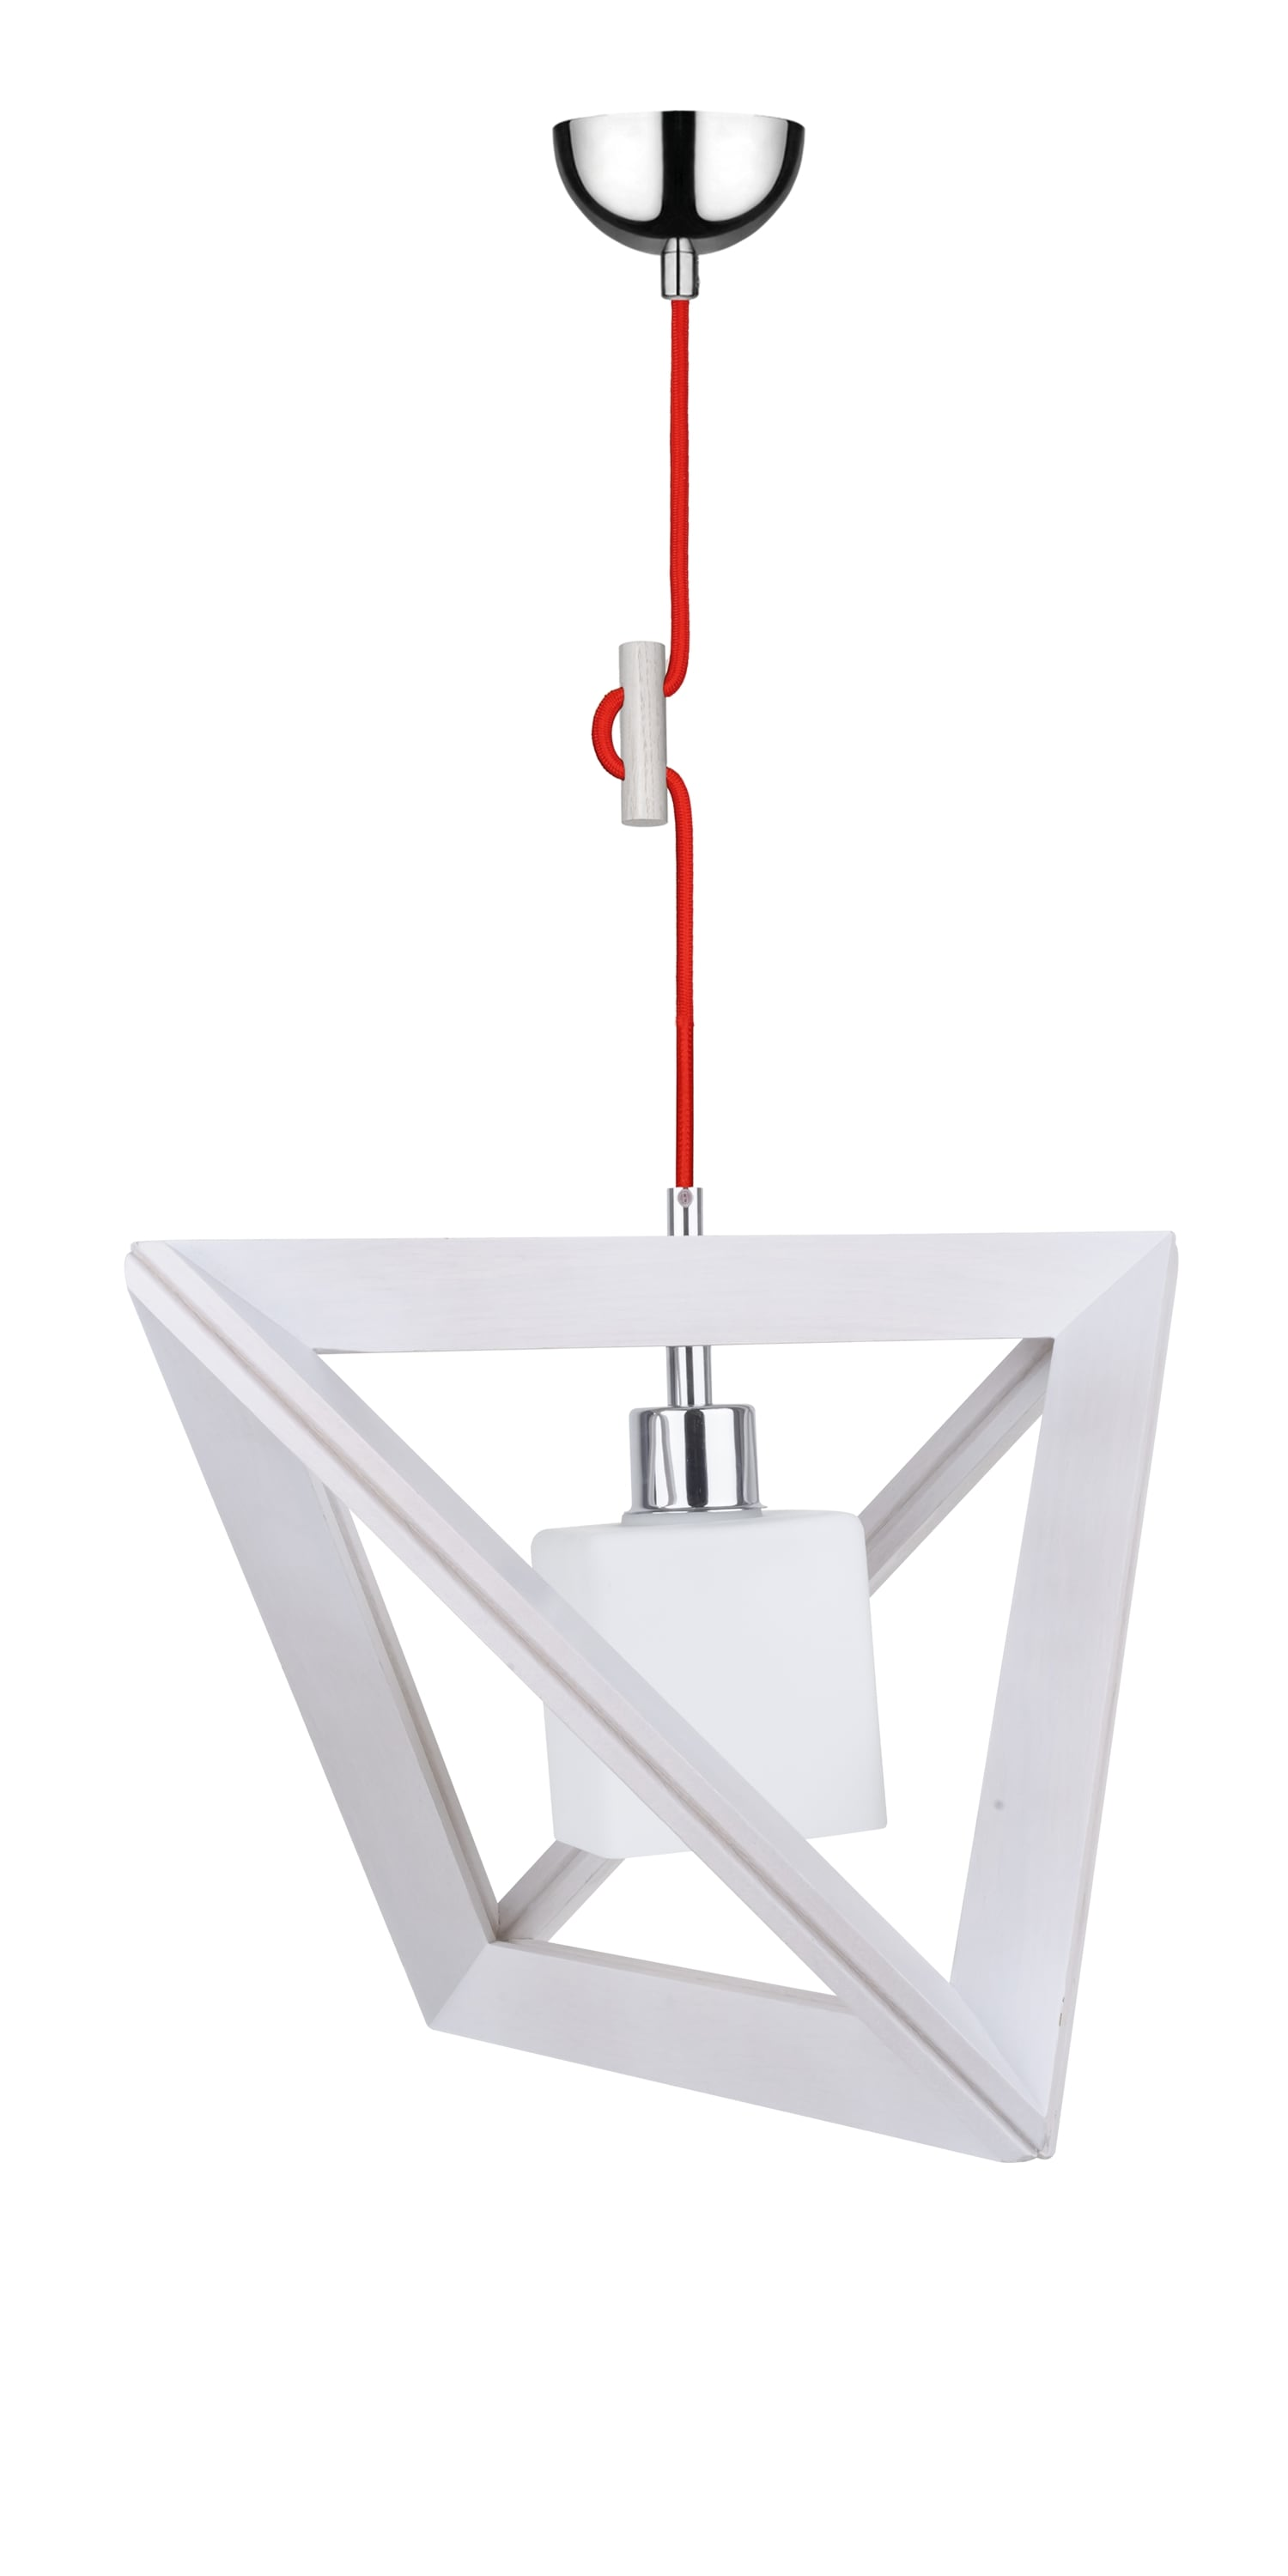 Hanging lamp Trigonon dąb bielony / chrom / red E27 60W